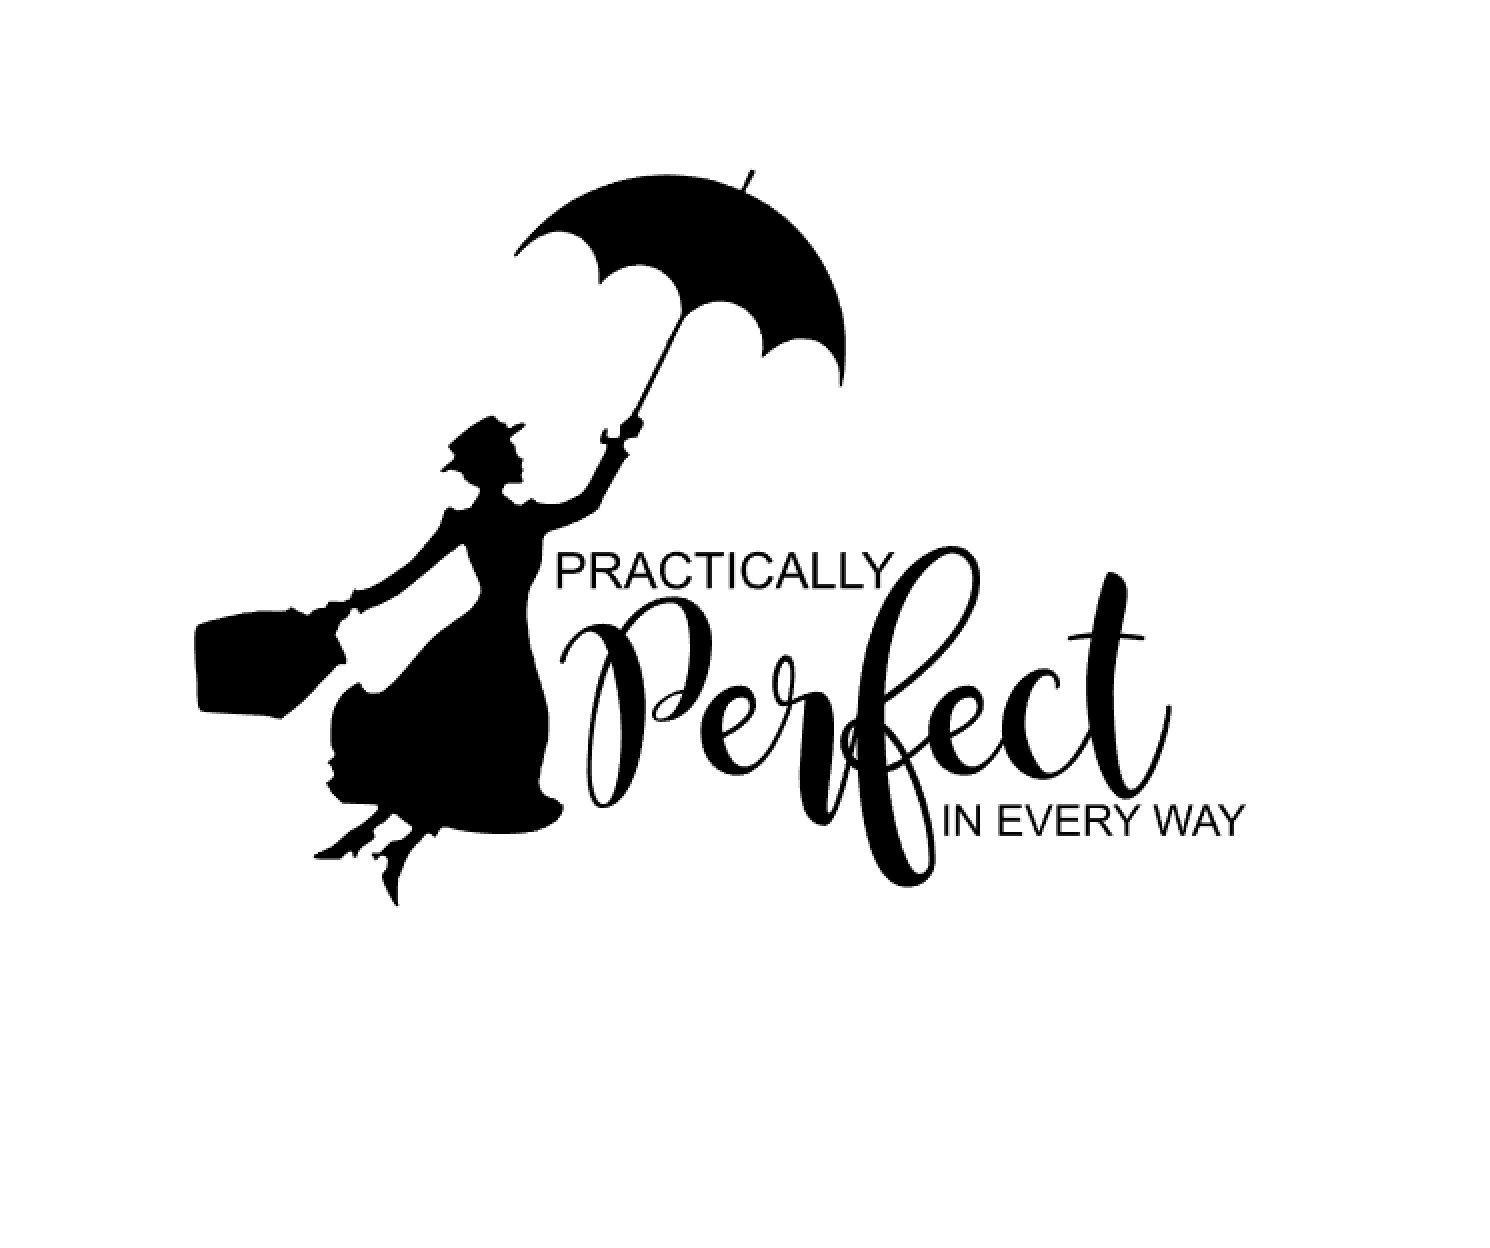 Practically Perfect in Every Way  Mary Poppins Matching Mother Daughter Family Disney World Disney Iron On Vinyl Decal for T Shirt 318 by HappyCutsStudio on Etsy Source b...